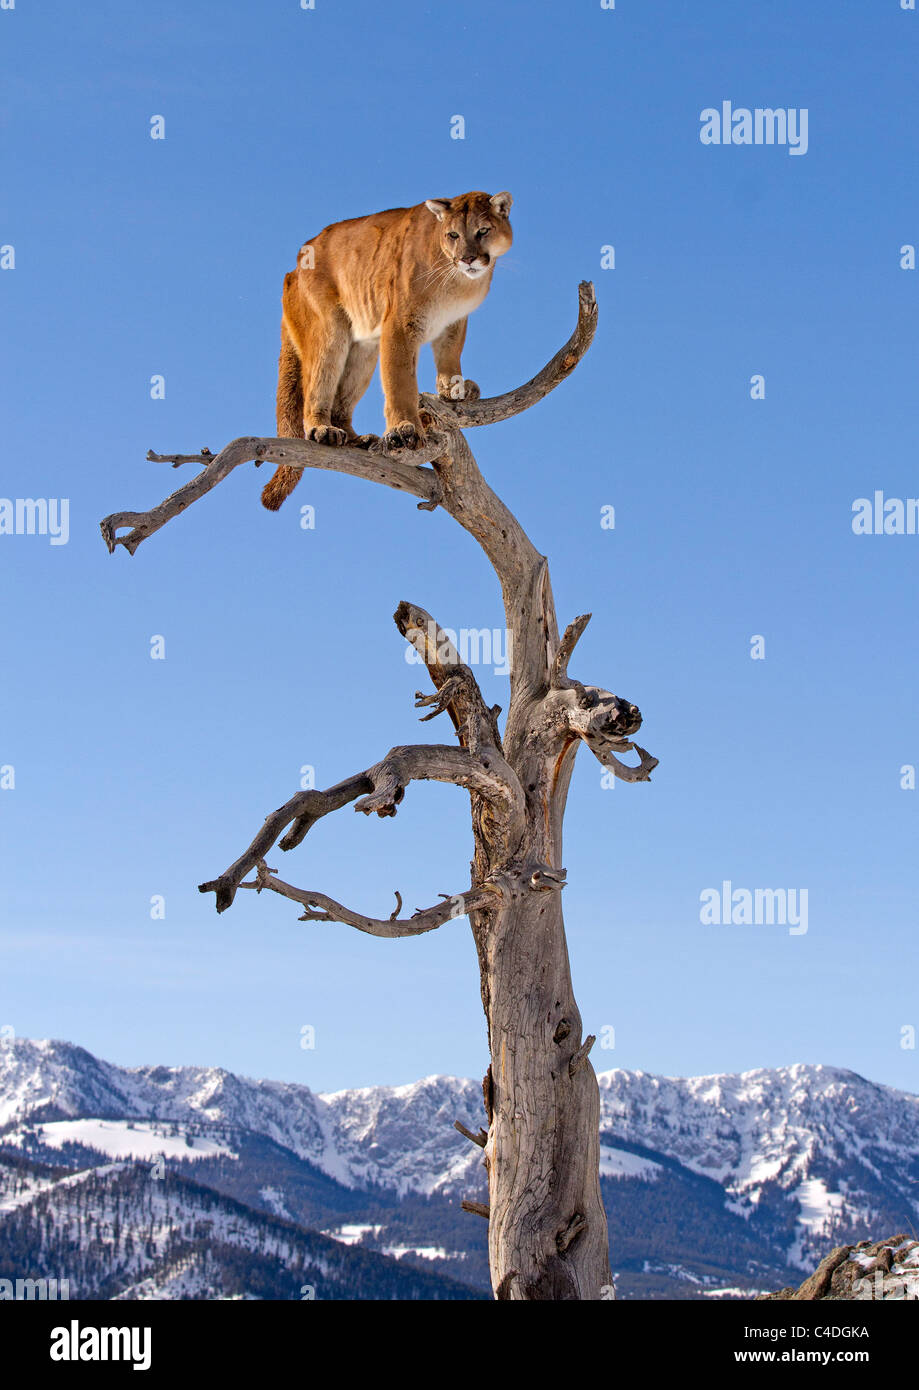 Mountain Lion, Felis concolor dans un arbre Photo Stock